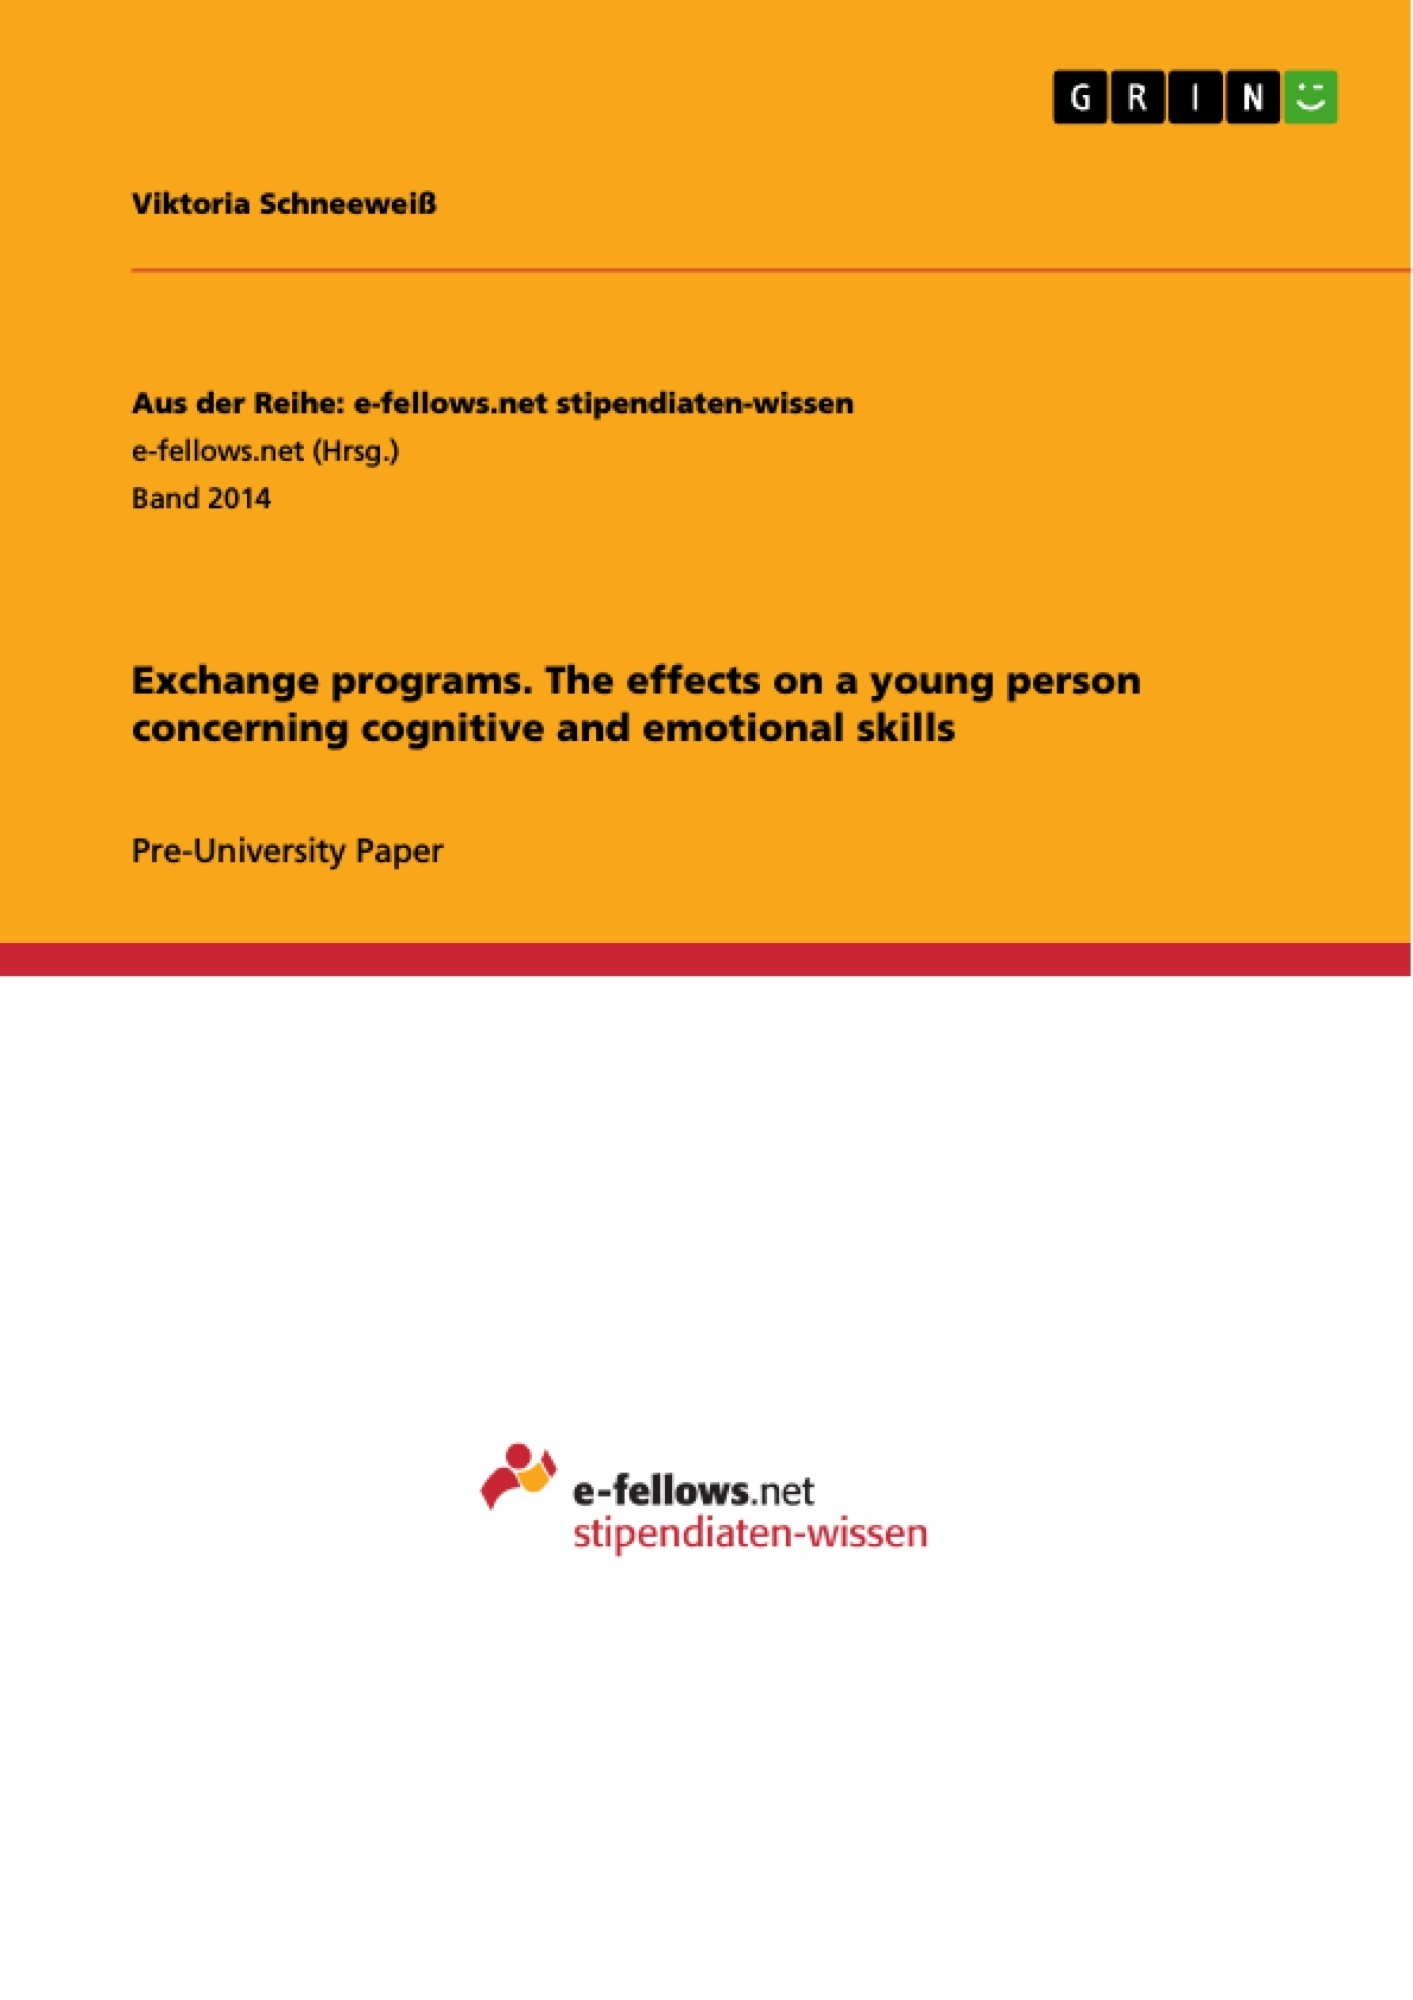 Title: Exchange programs. The effects on a young person concerning cognitive and emotional skills